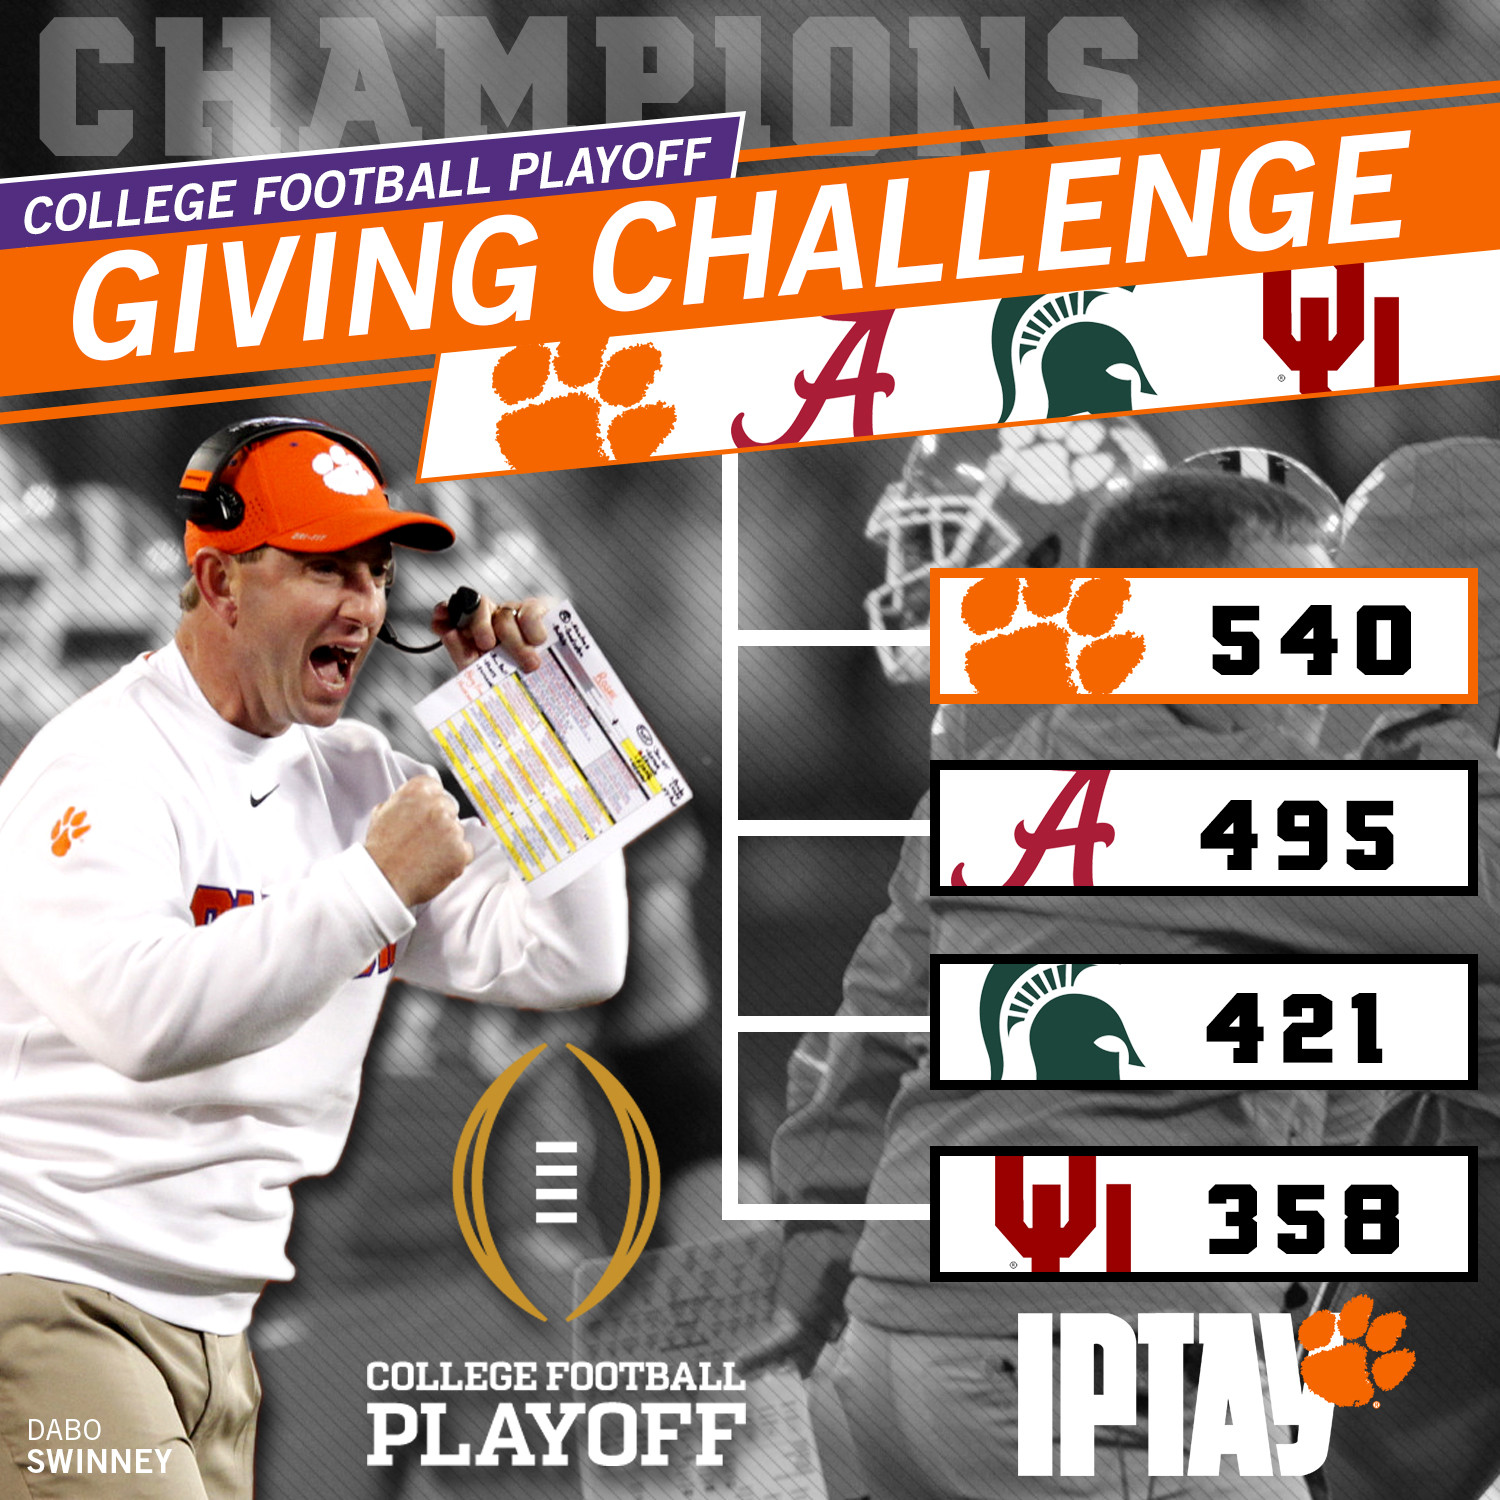 IPTAY Wins 2015 College Football Playoff Giving Challenge